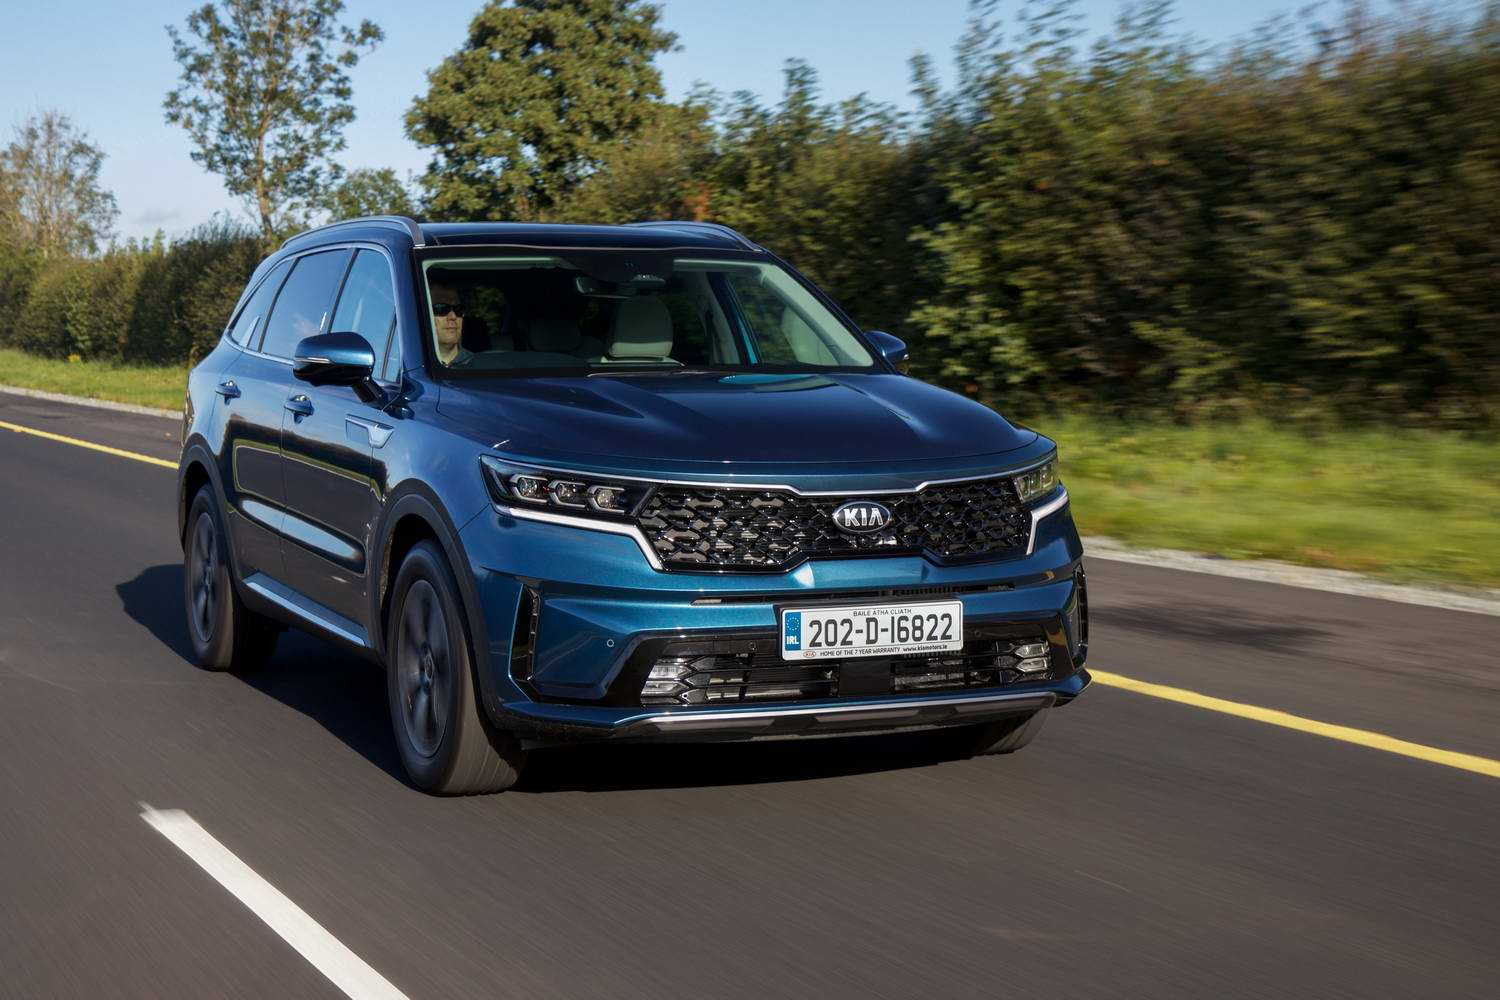 Car Reviews | Kia Sorento 2.2 diesel (2020) | CompleteCar.ie